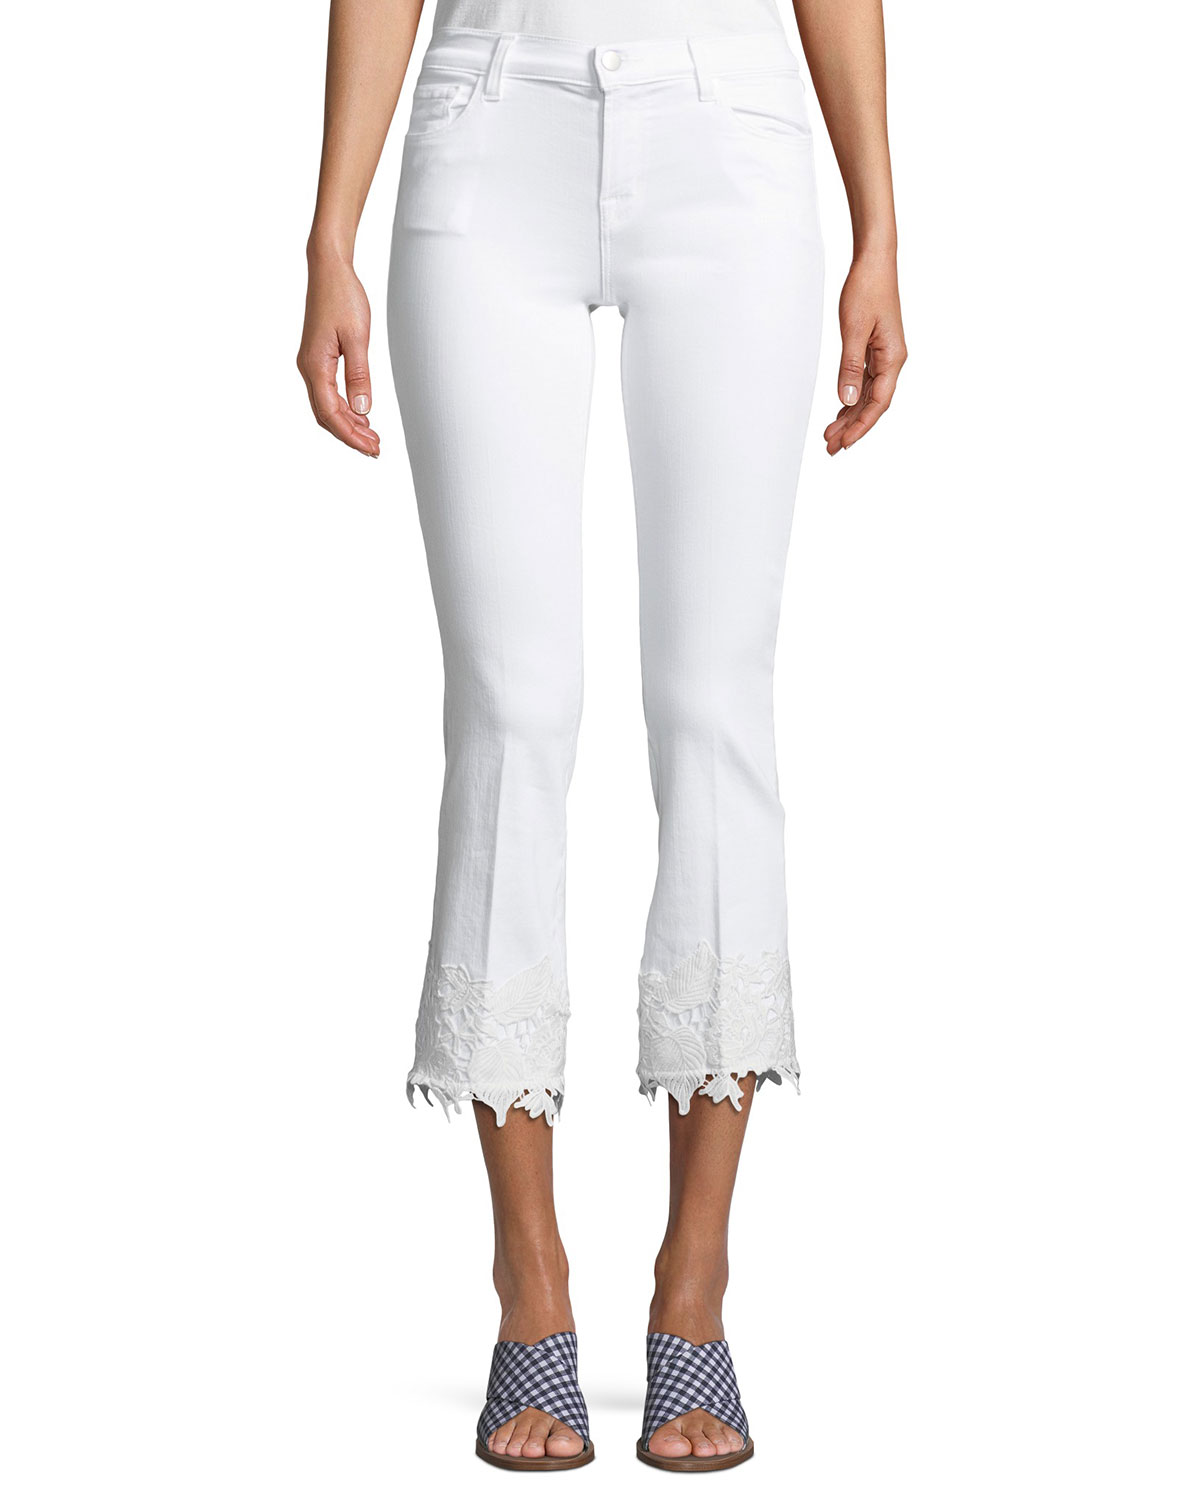 Selena Mid-Rise Crop Boot Jeans With Lace Hem, White Lace